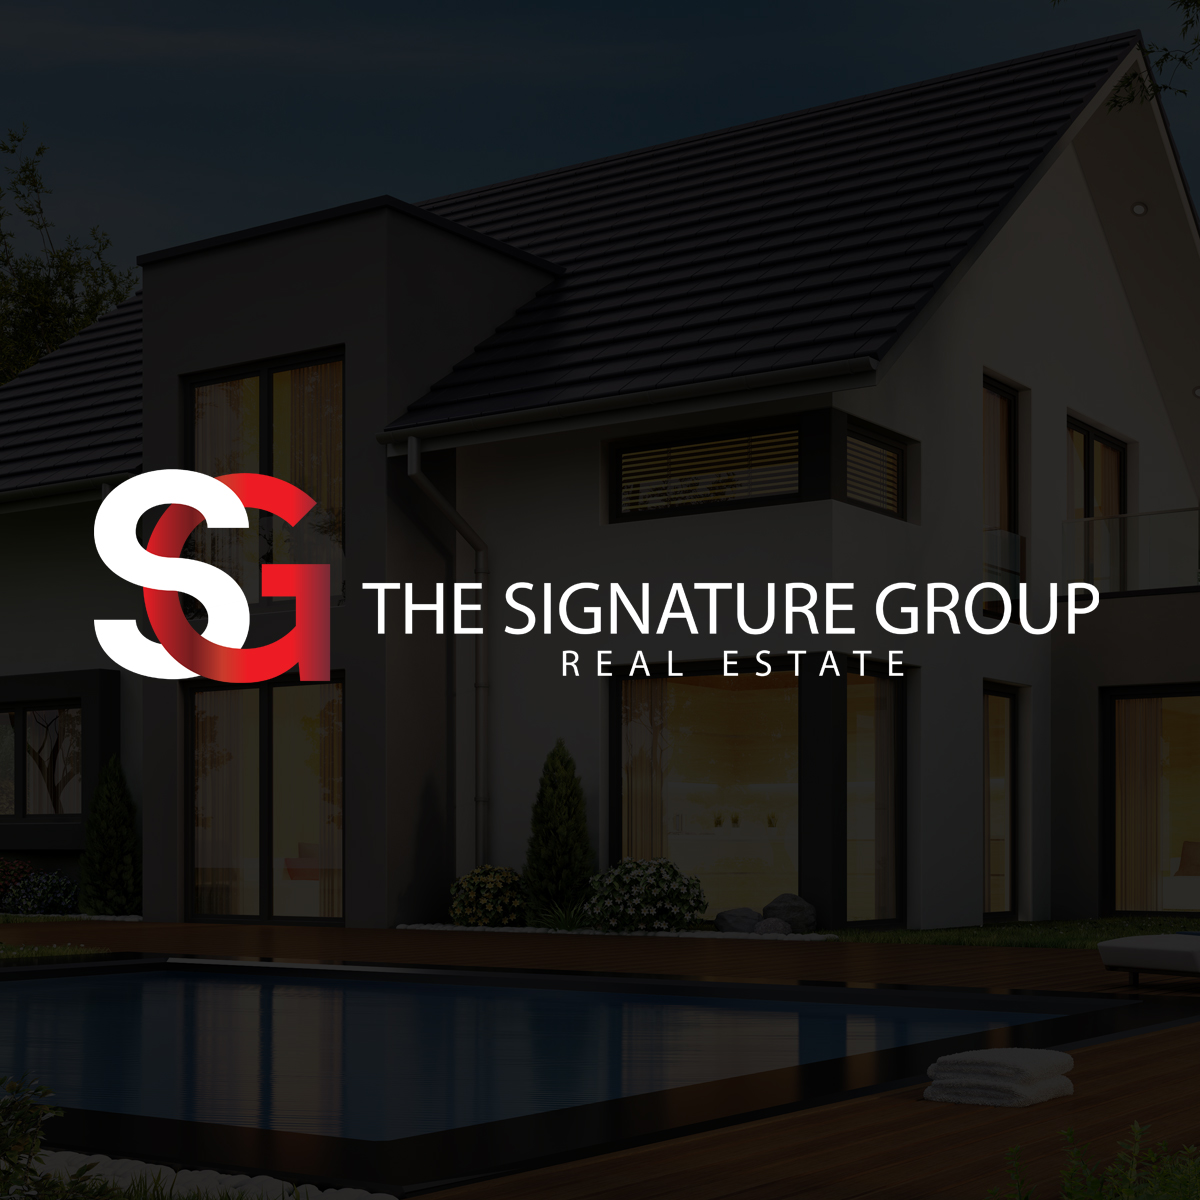 The Signature Group Real Estate Instagram and Social Media Marketing Real Estate Pieces